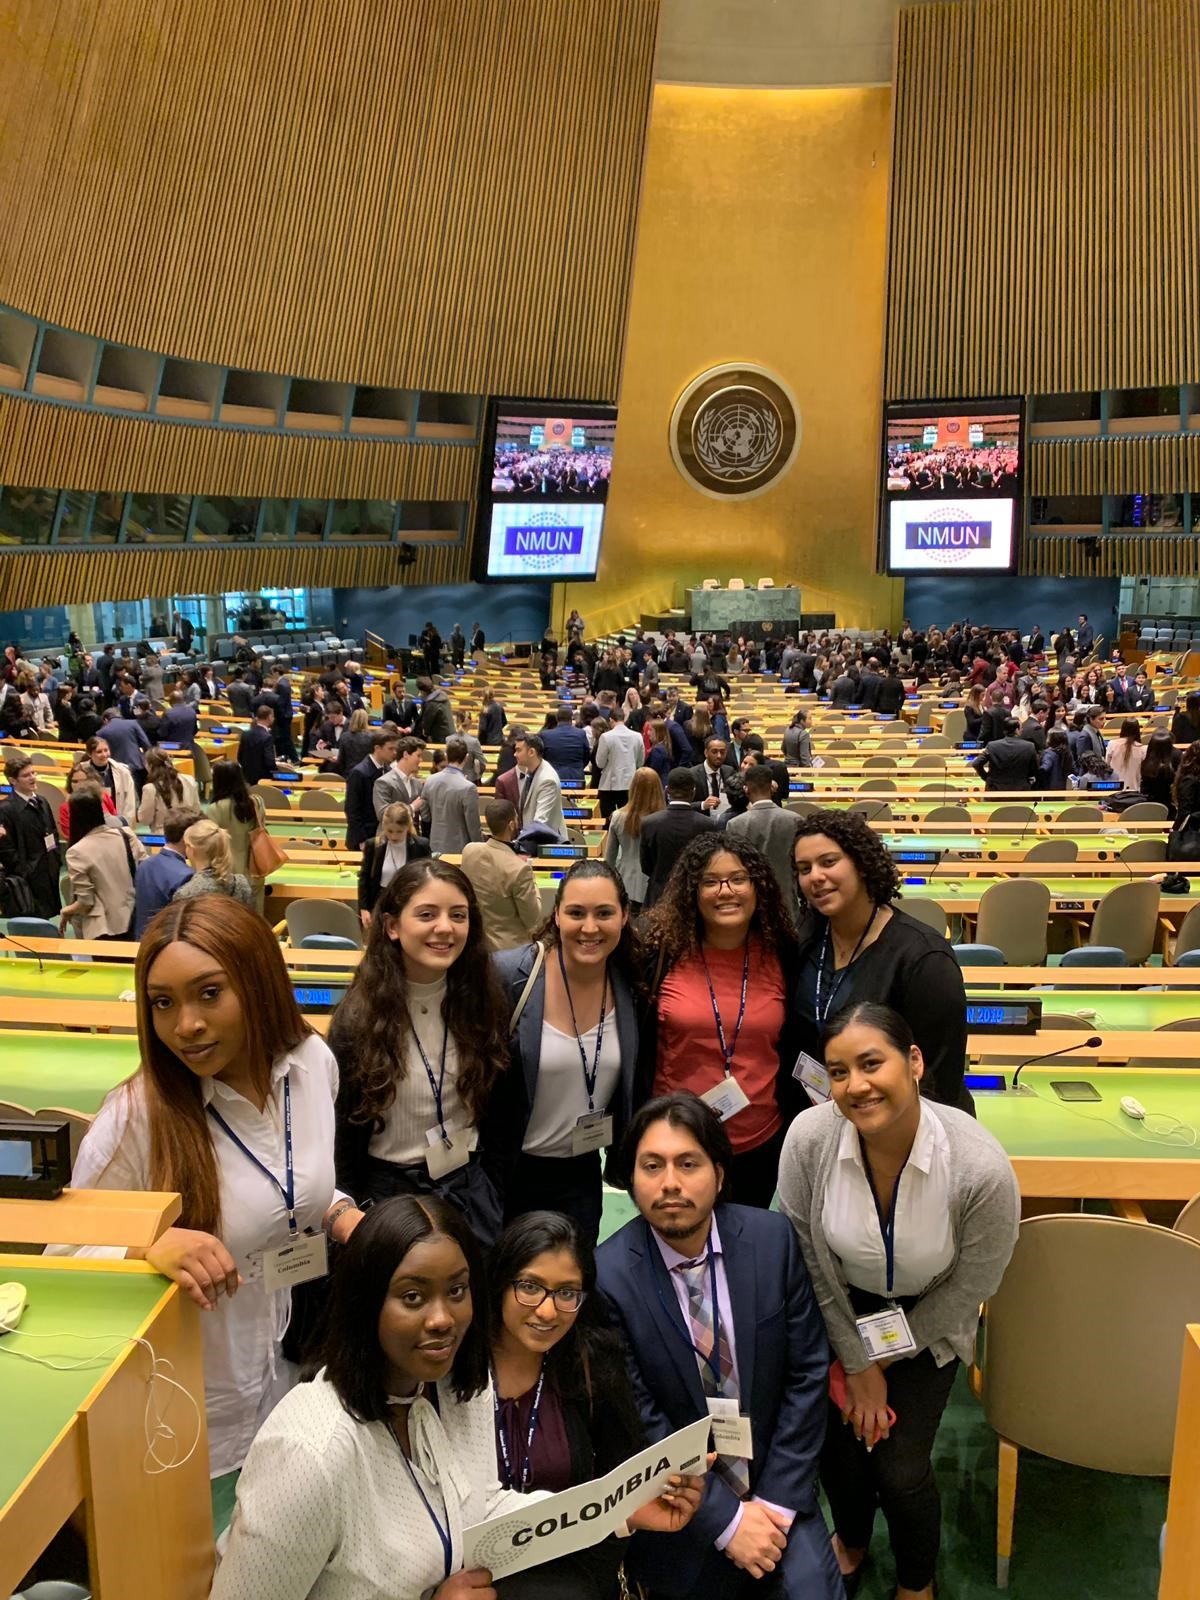 Student delegates pose inside the UN headquarters in New York City